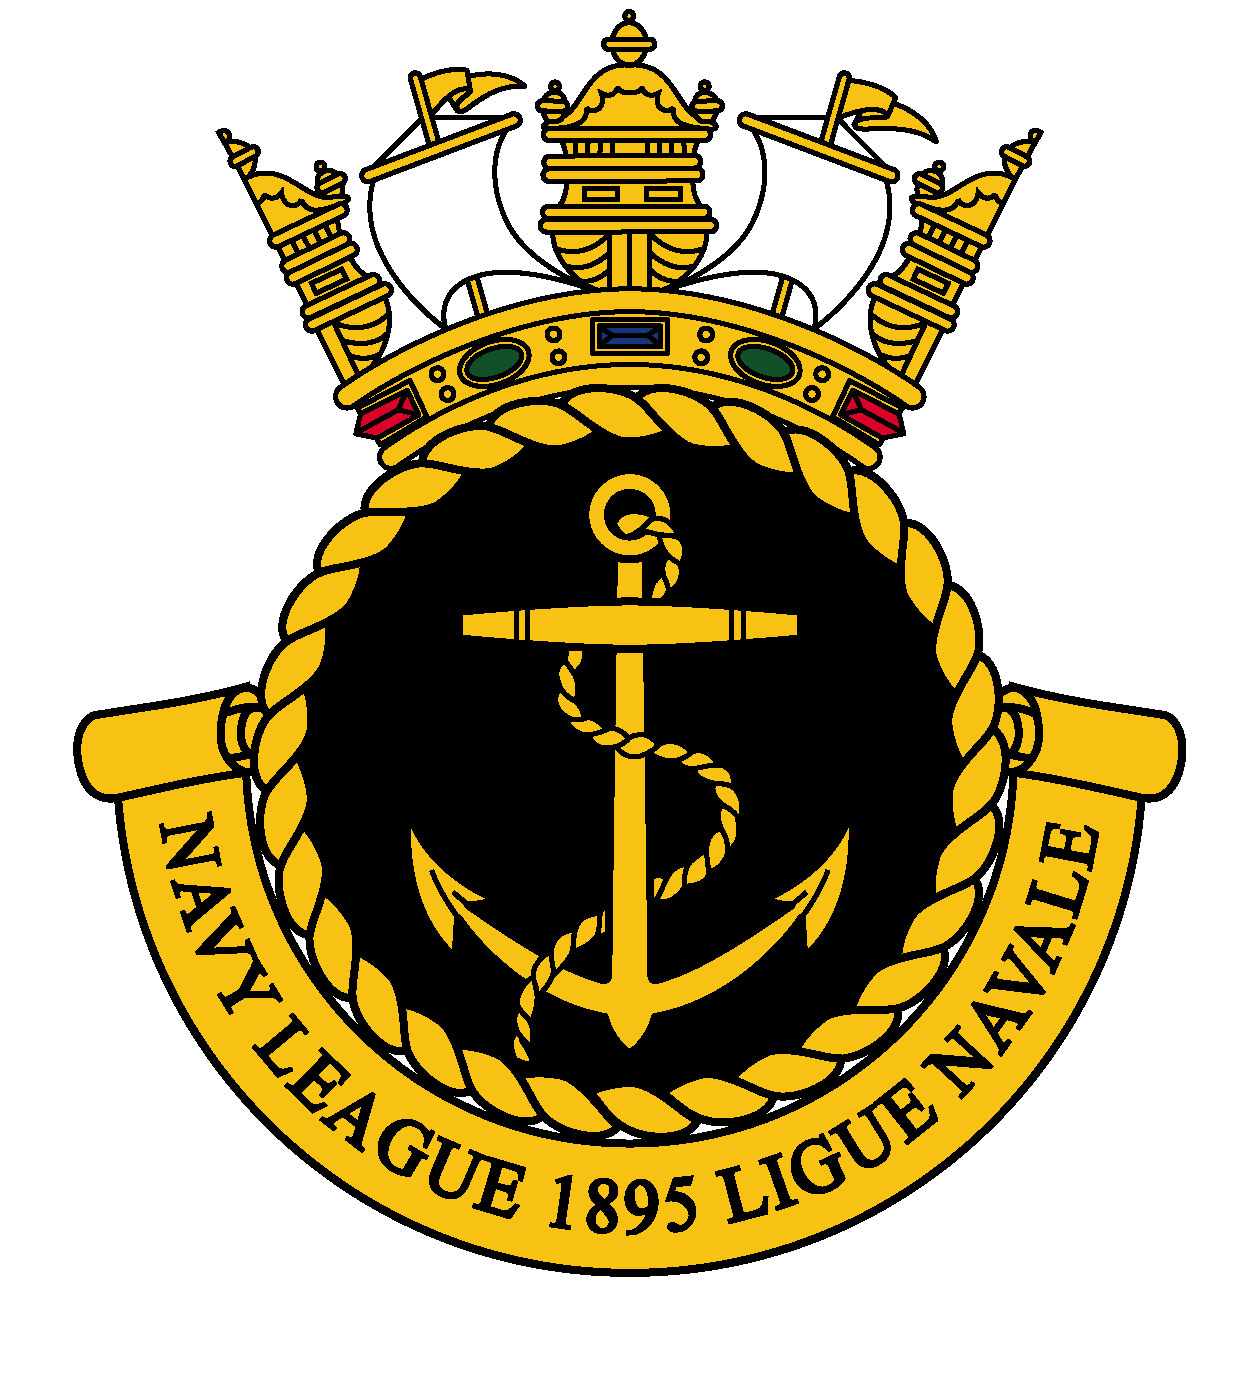 NEW-NAVY-LEAGUE-LOGO.png